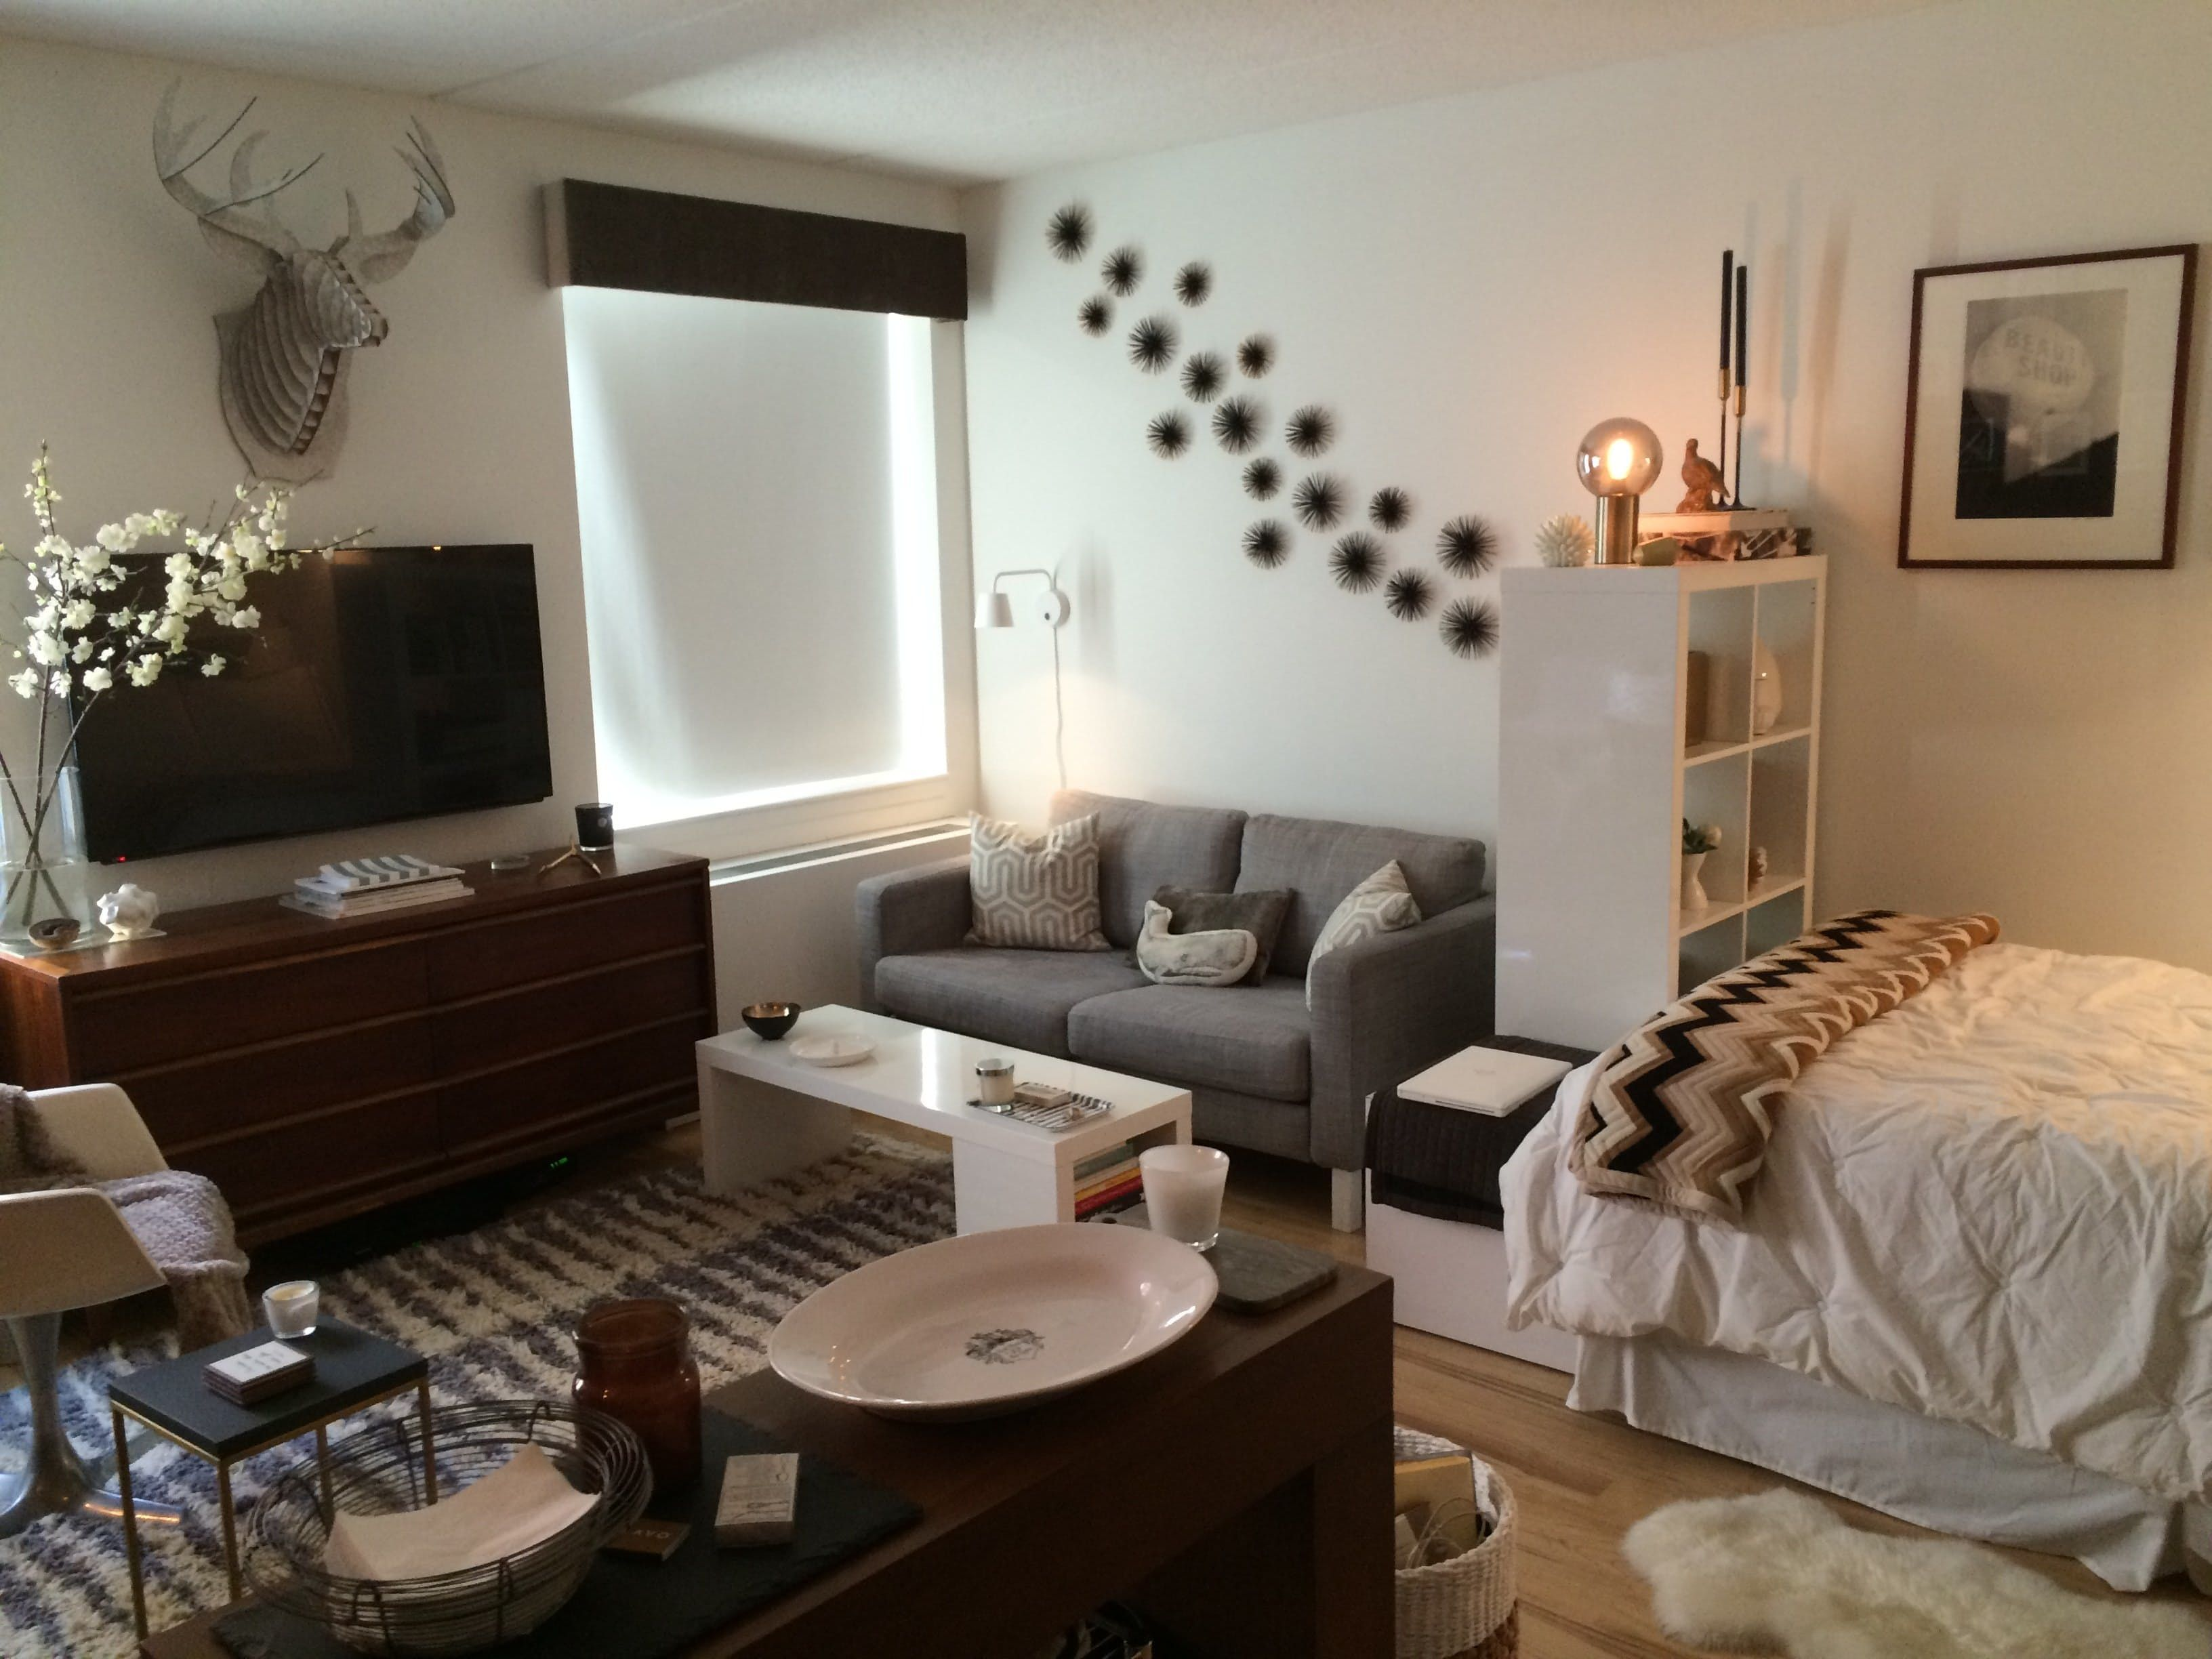 Best Ikea Studio Apartment Ideas On Pinterest Studio - Apartment with a smart layout